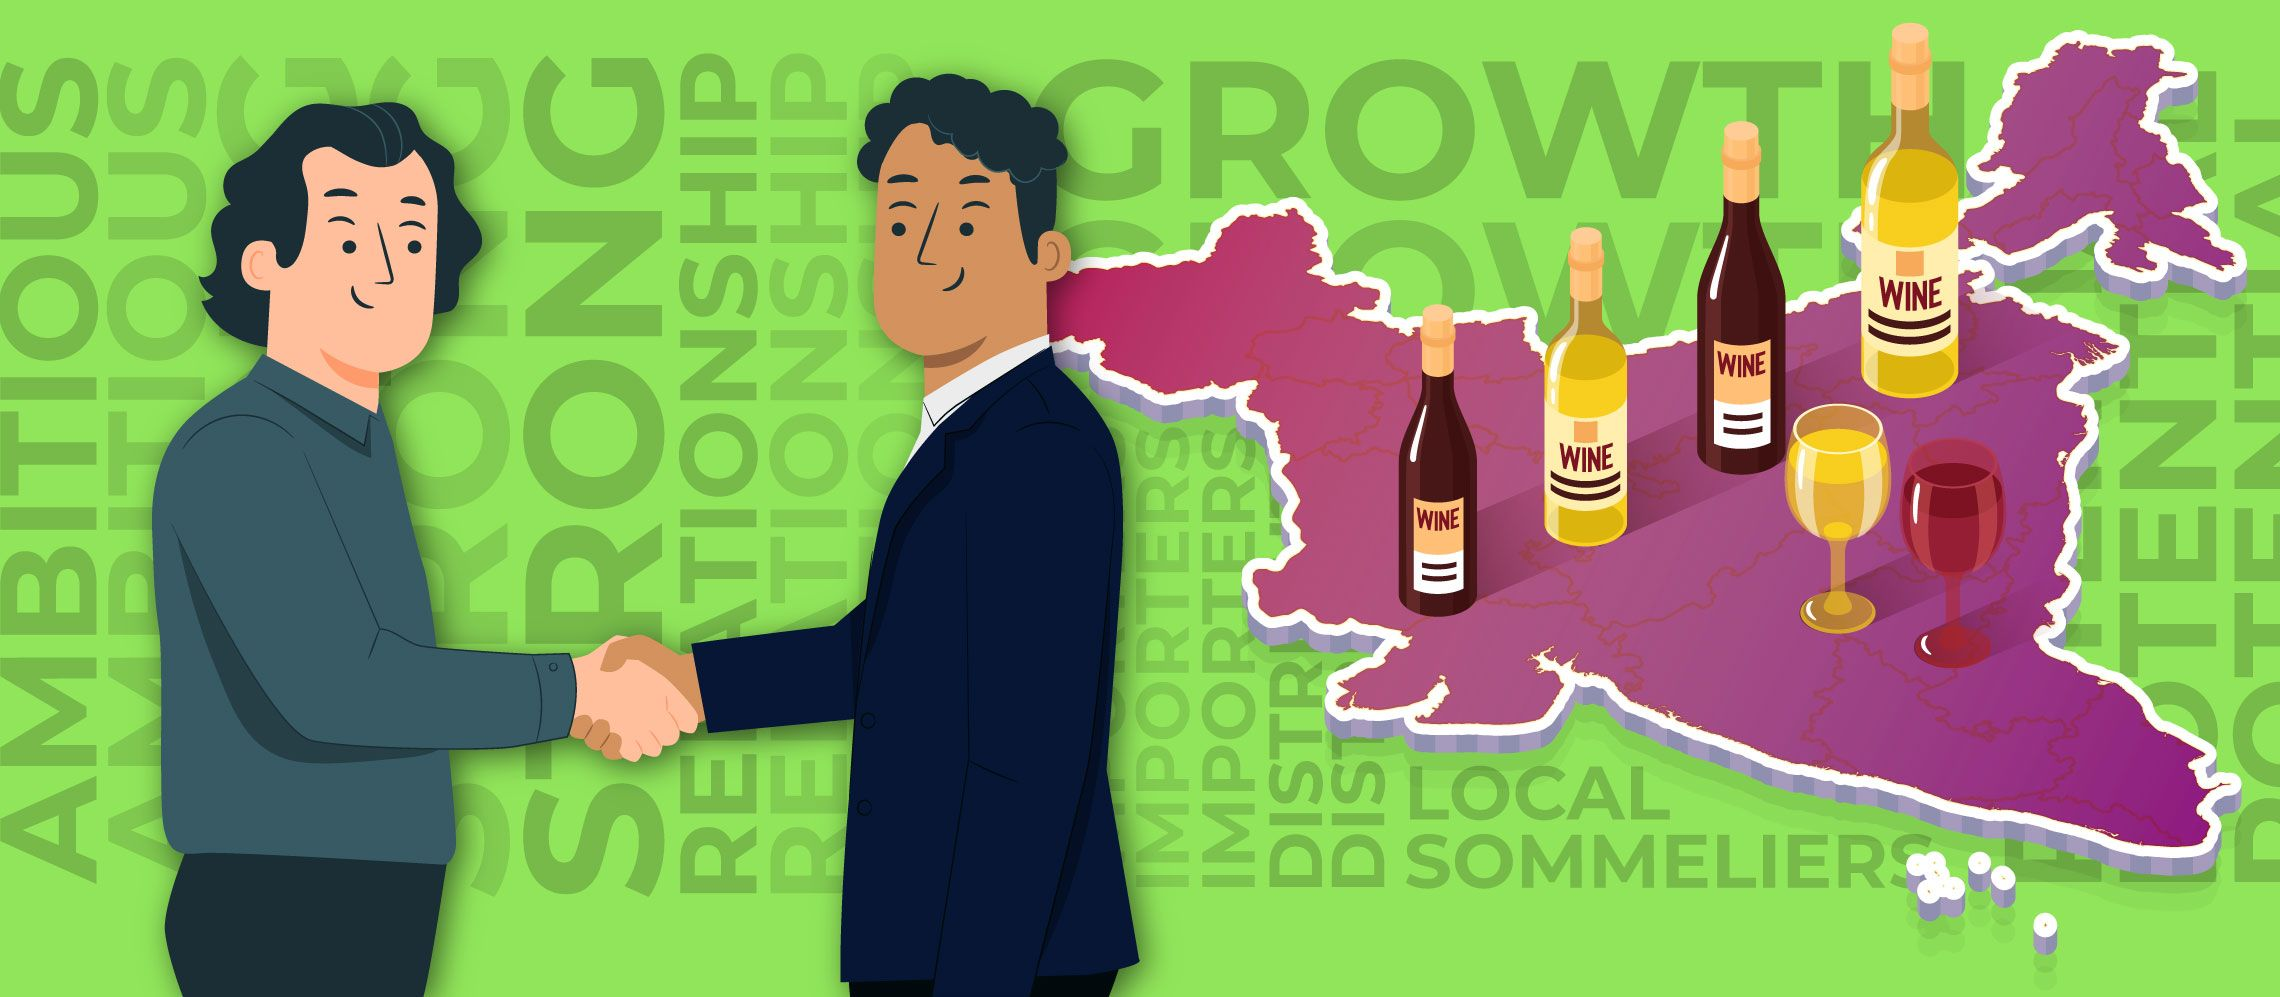 Photo for: How To Successfully Export Wine and Increase Sales In India